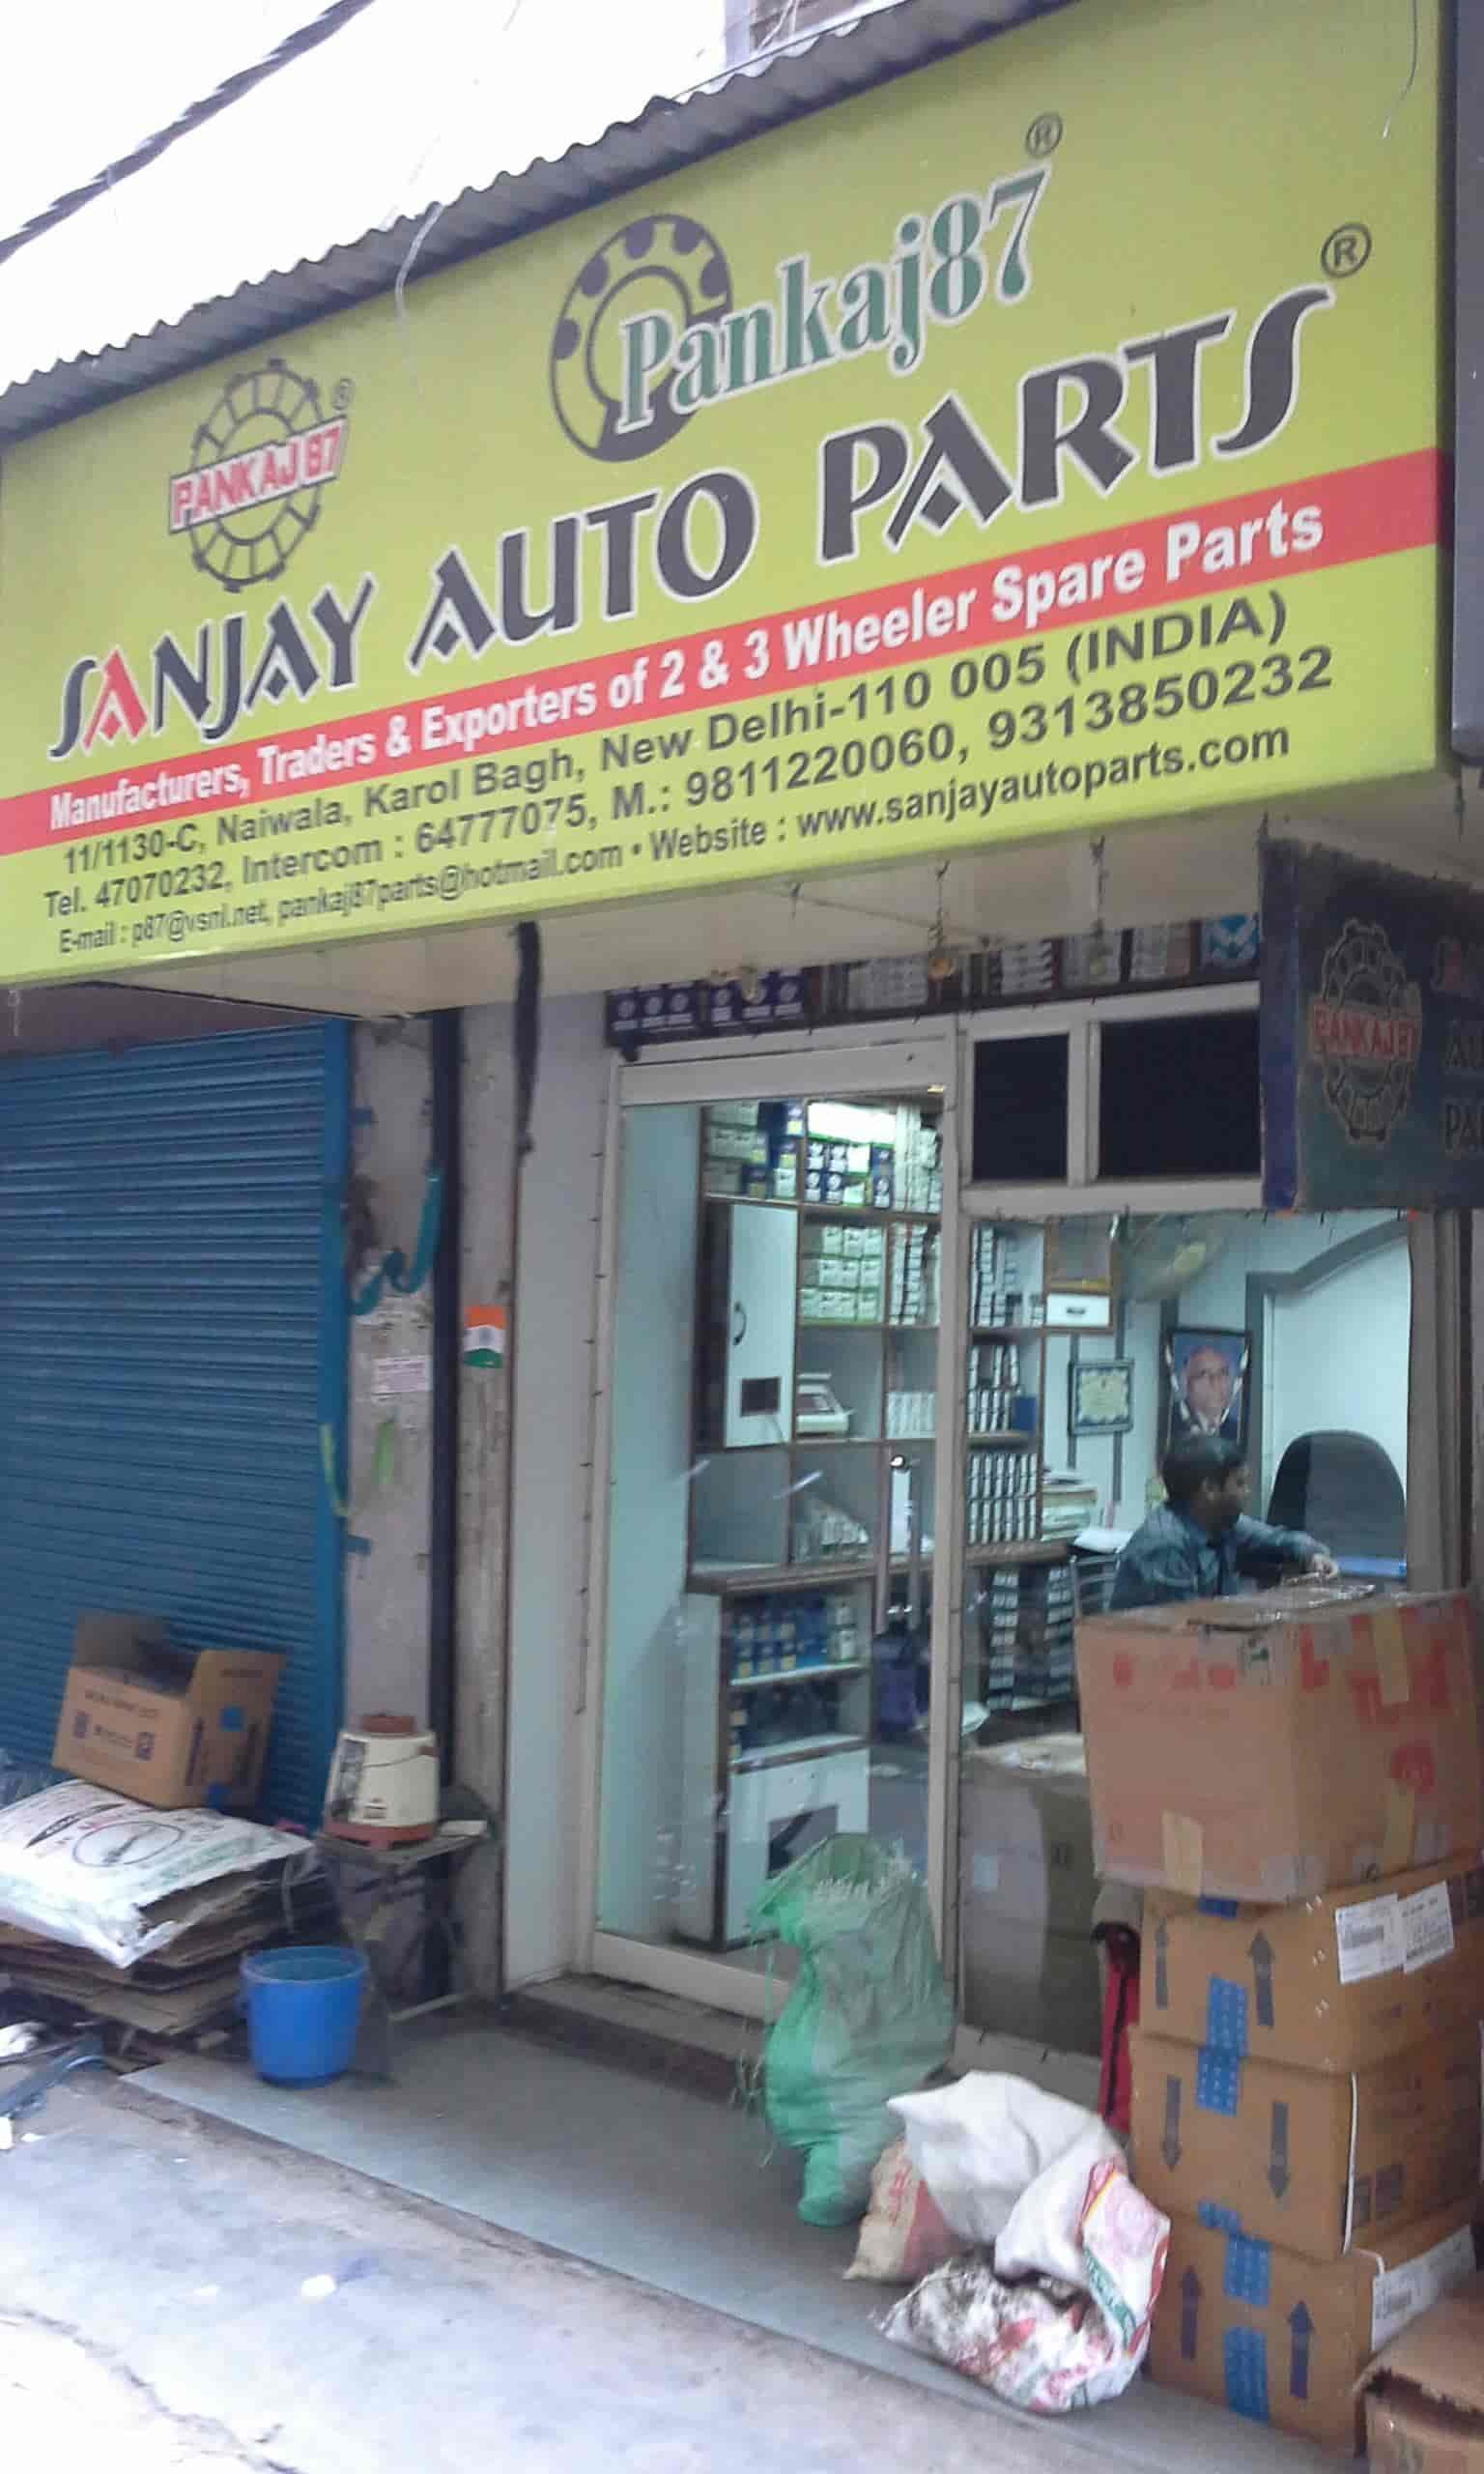 Sanjay Auto Parts, Karol Bagh - Automobile Part Dealers in